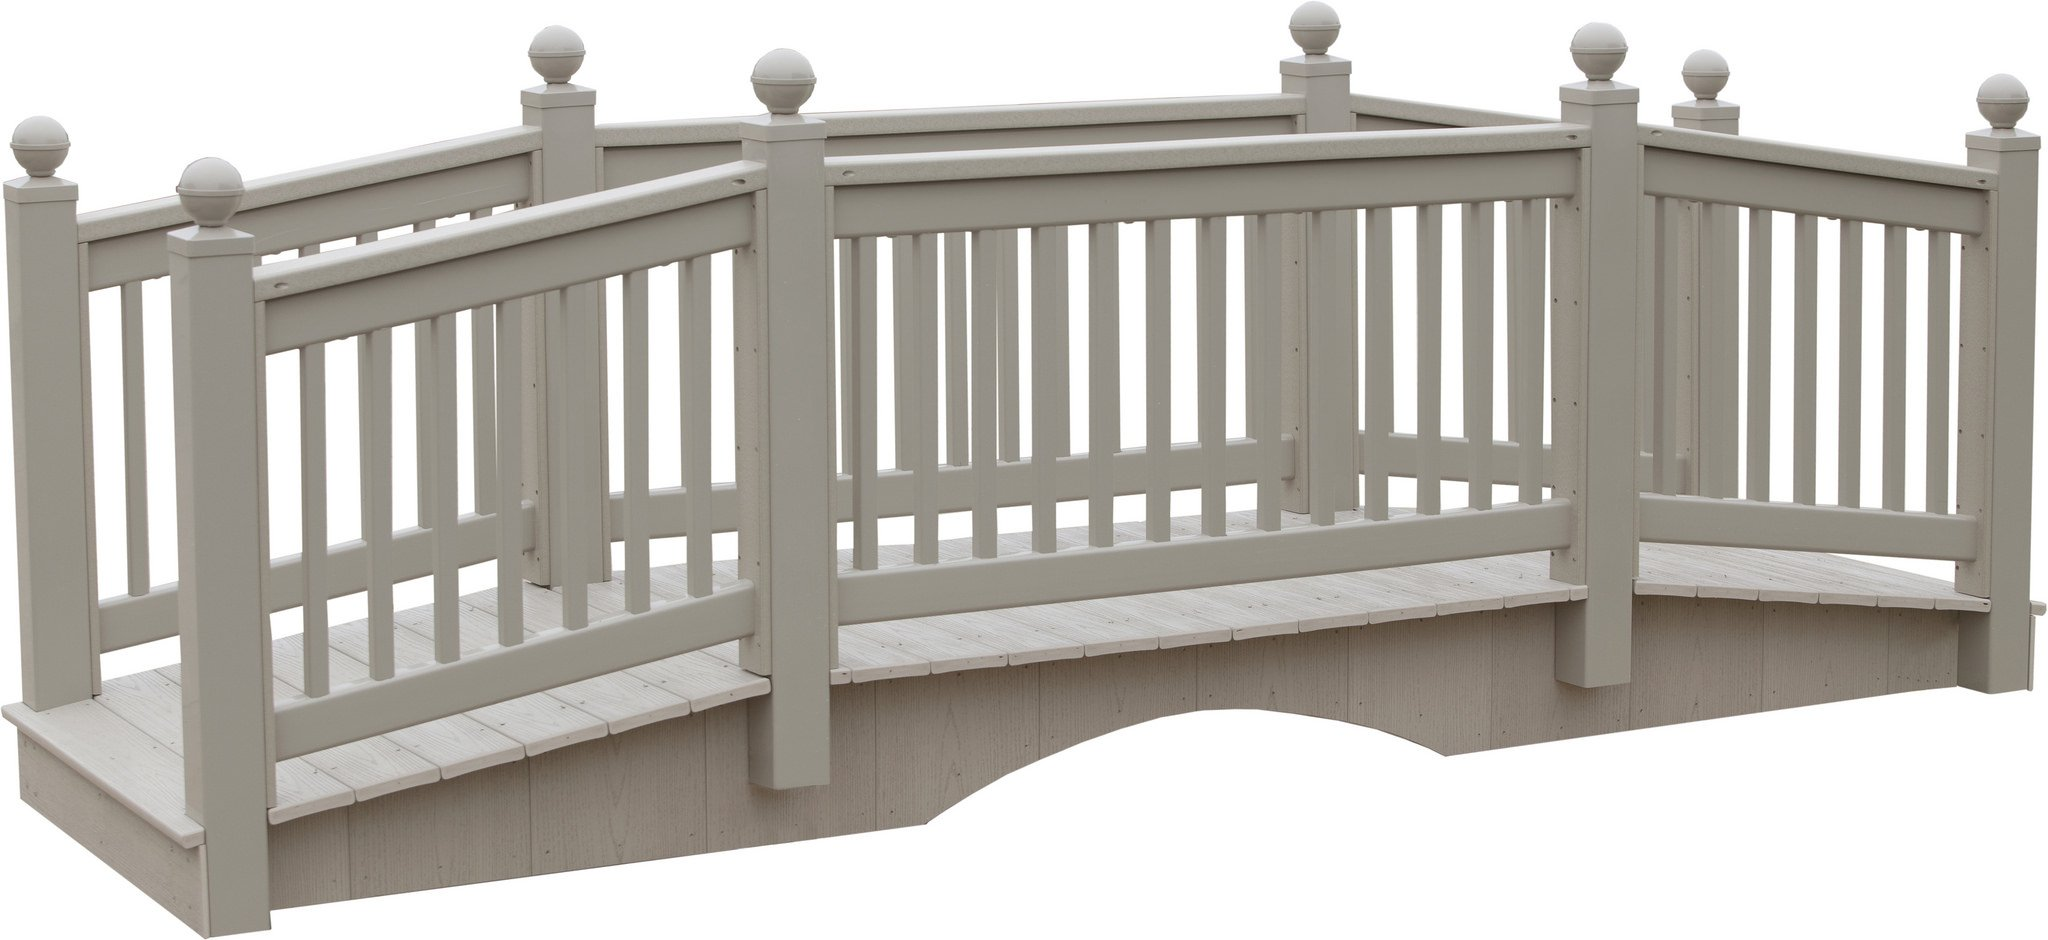 12 Foot Vinyl Outdoor Bridge with Gray Vekadeck Flooring - Clay - Amish Made in USA